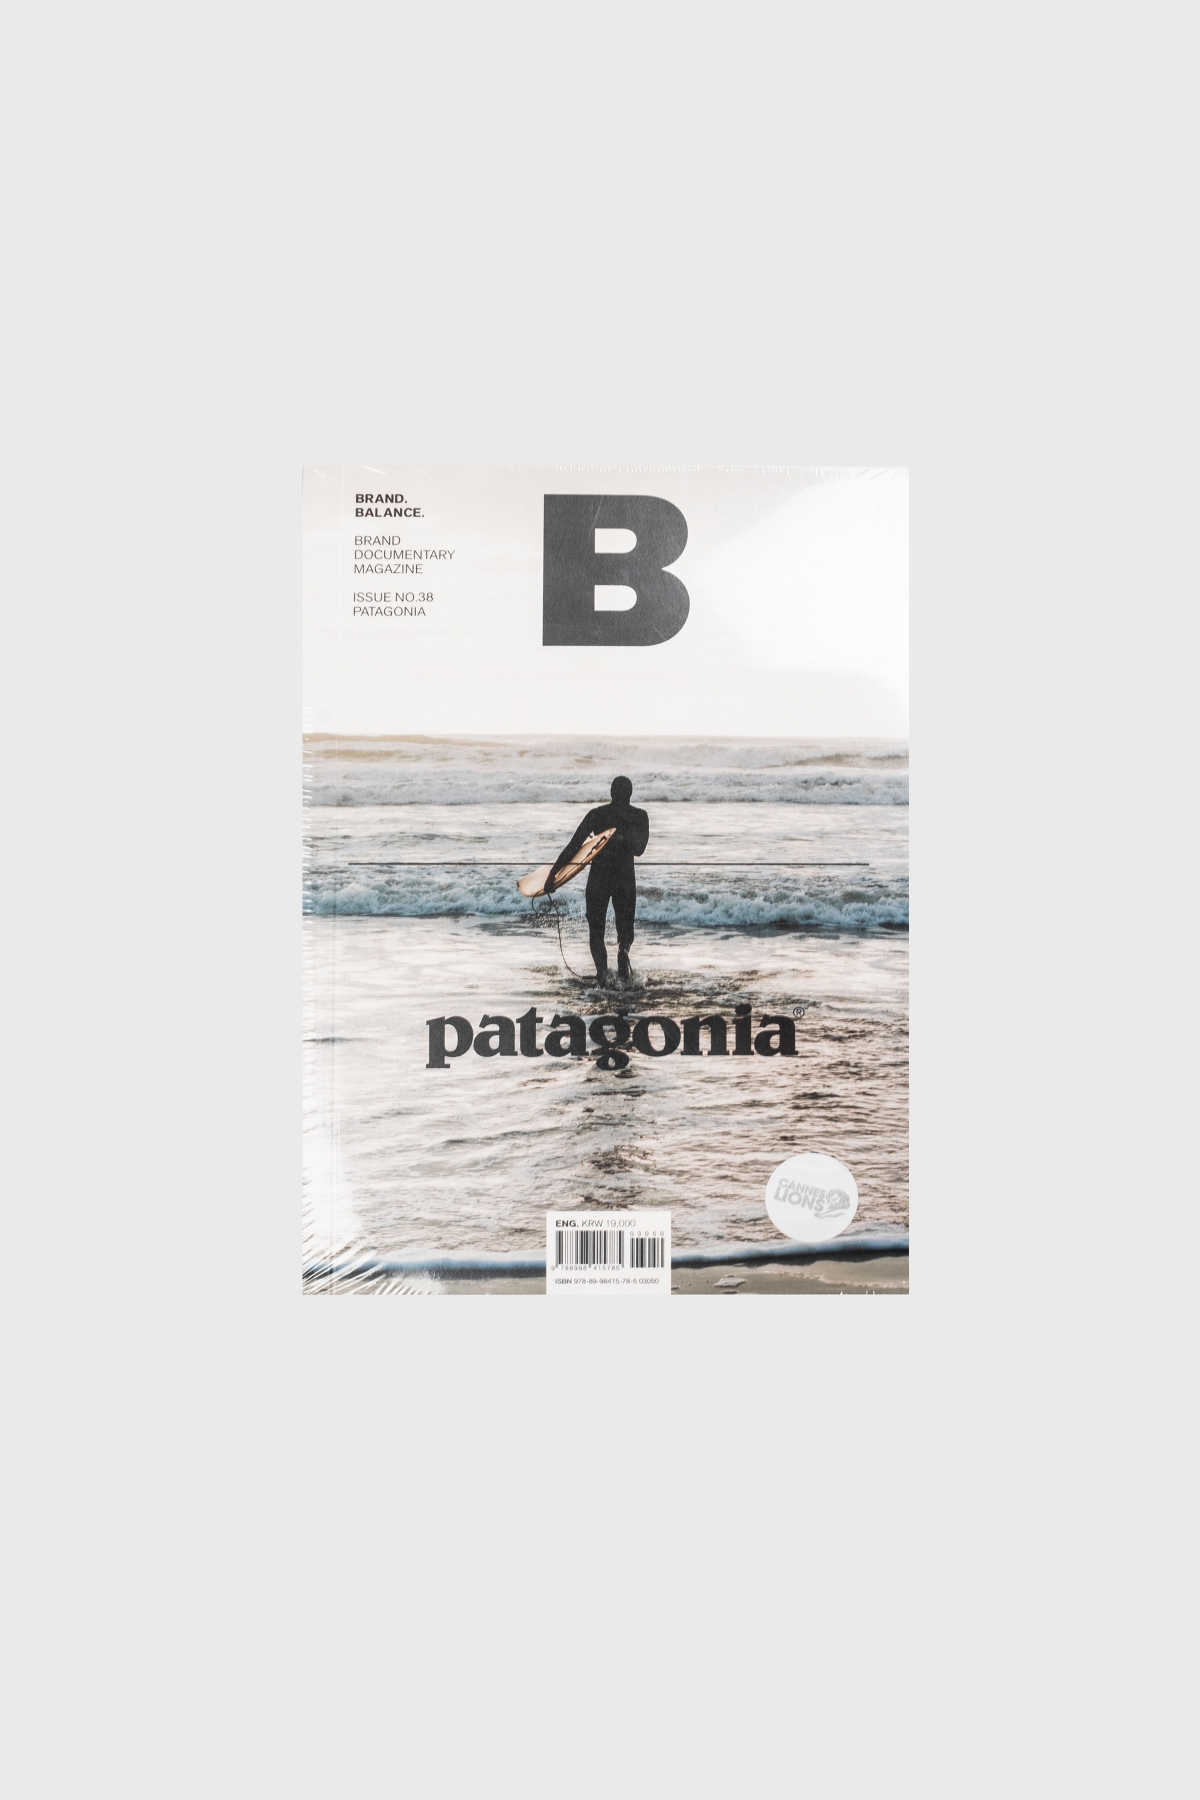 brand balance - issue 38 - patagonia